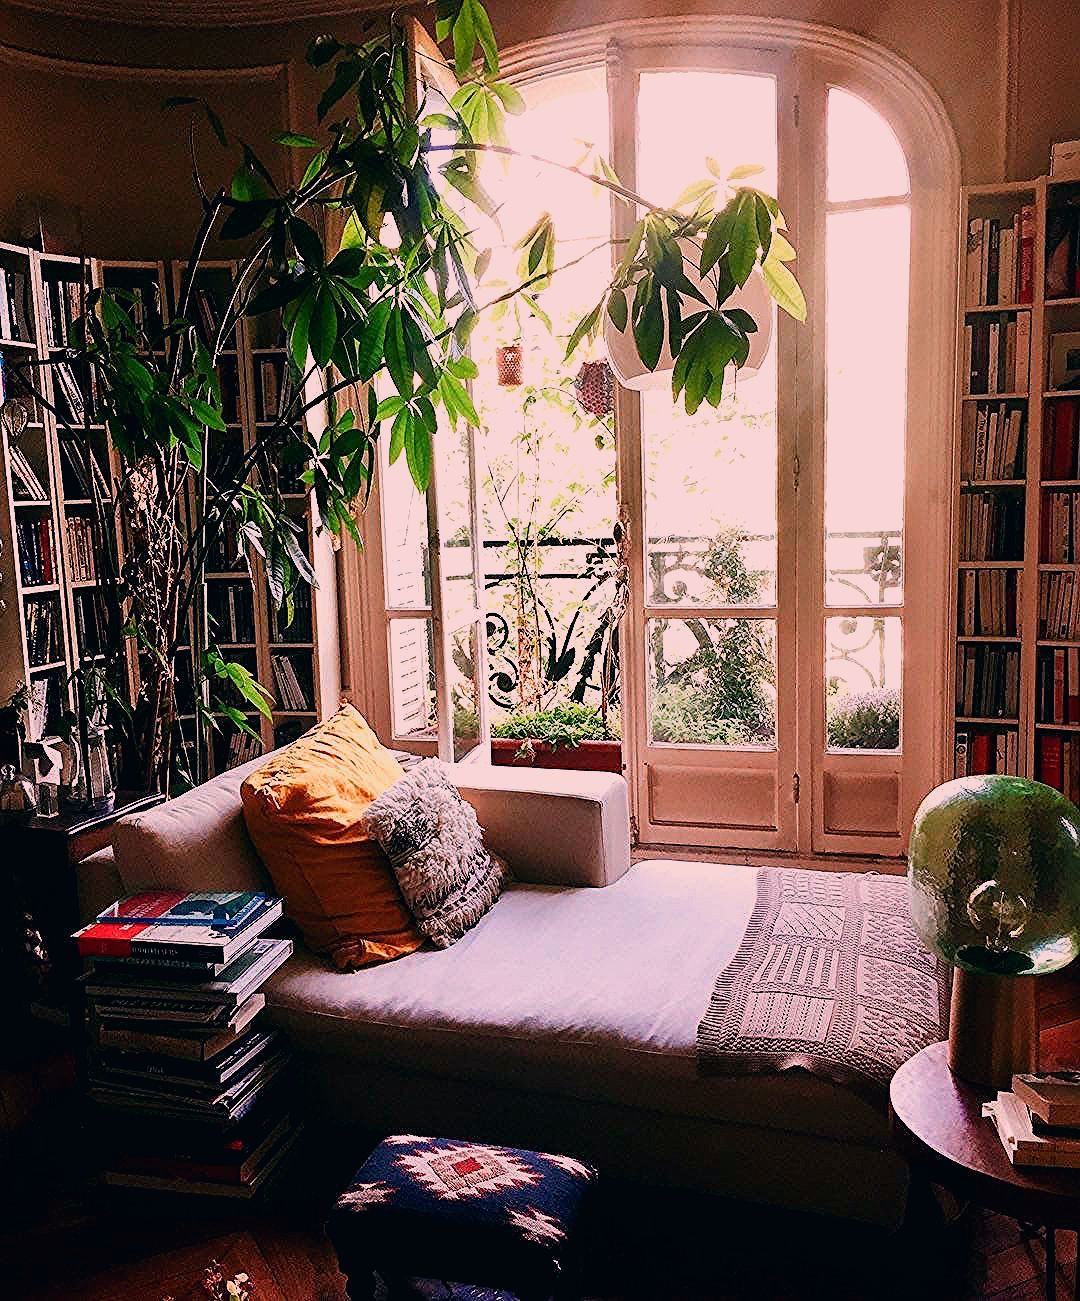 bohemian living room with big plants and bookcases in parisian apartment #homedecor #livingroomdecor #bohemiandecor #houseplantclub #parisianapartment